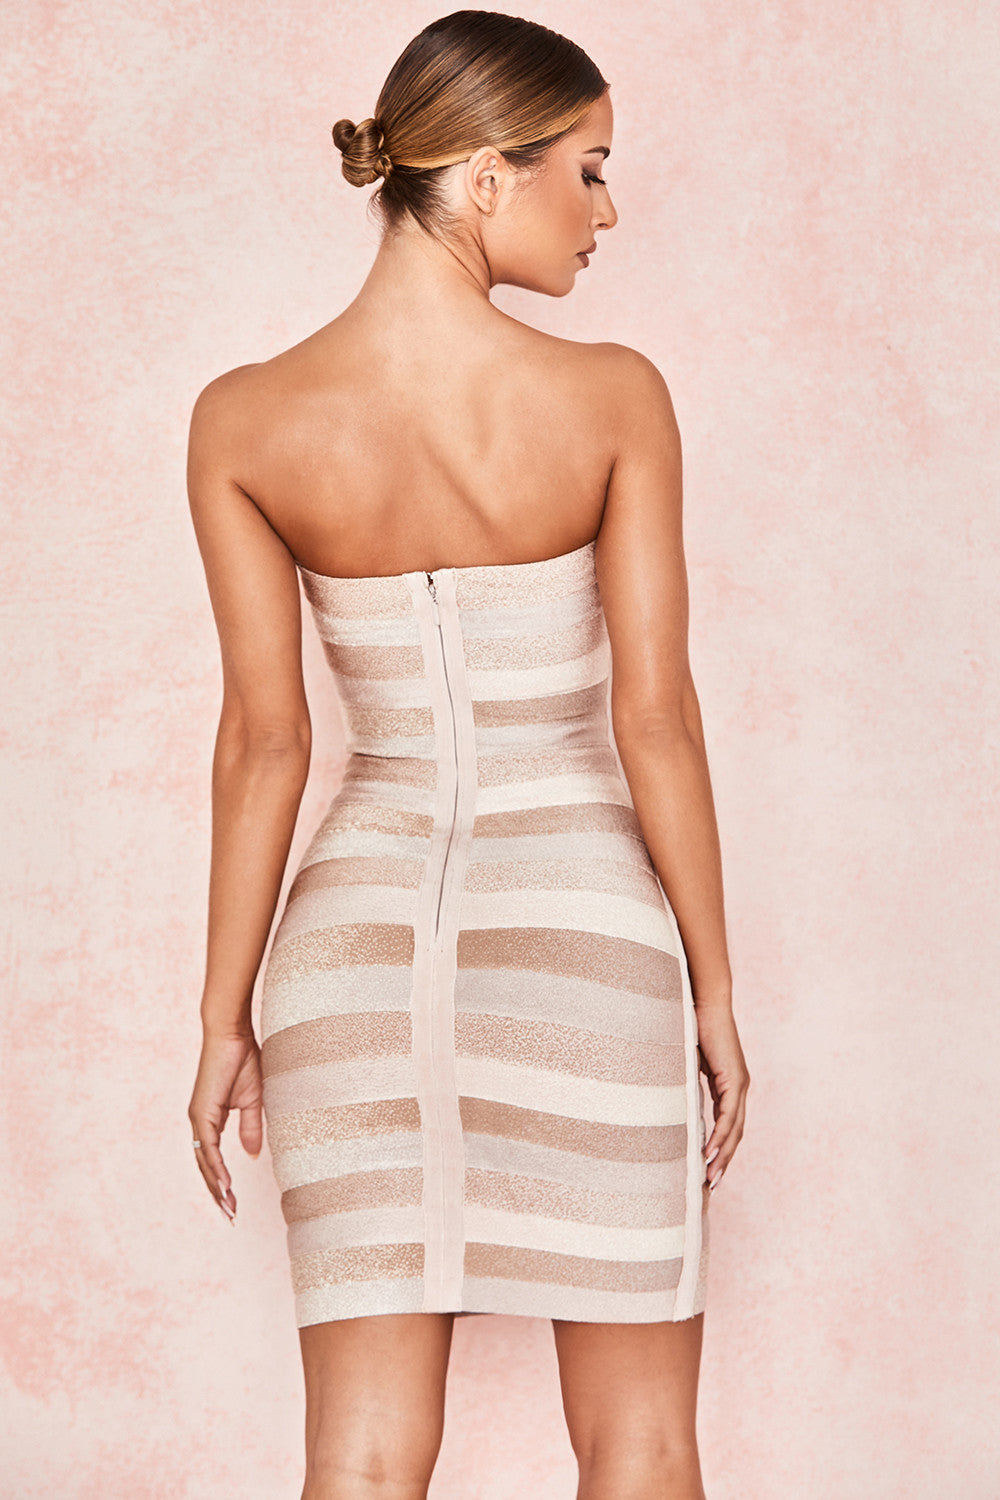 beige strapless dress